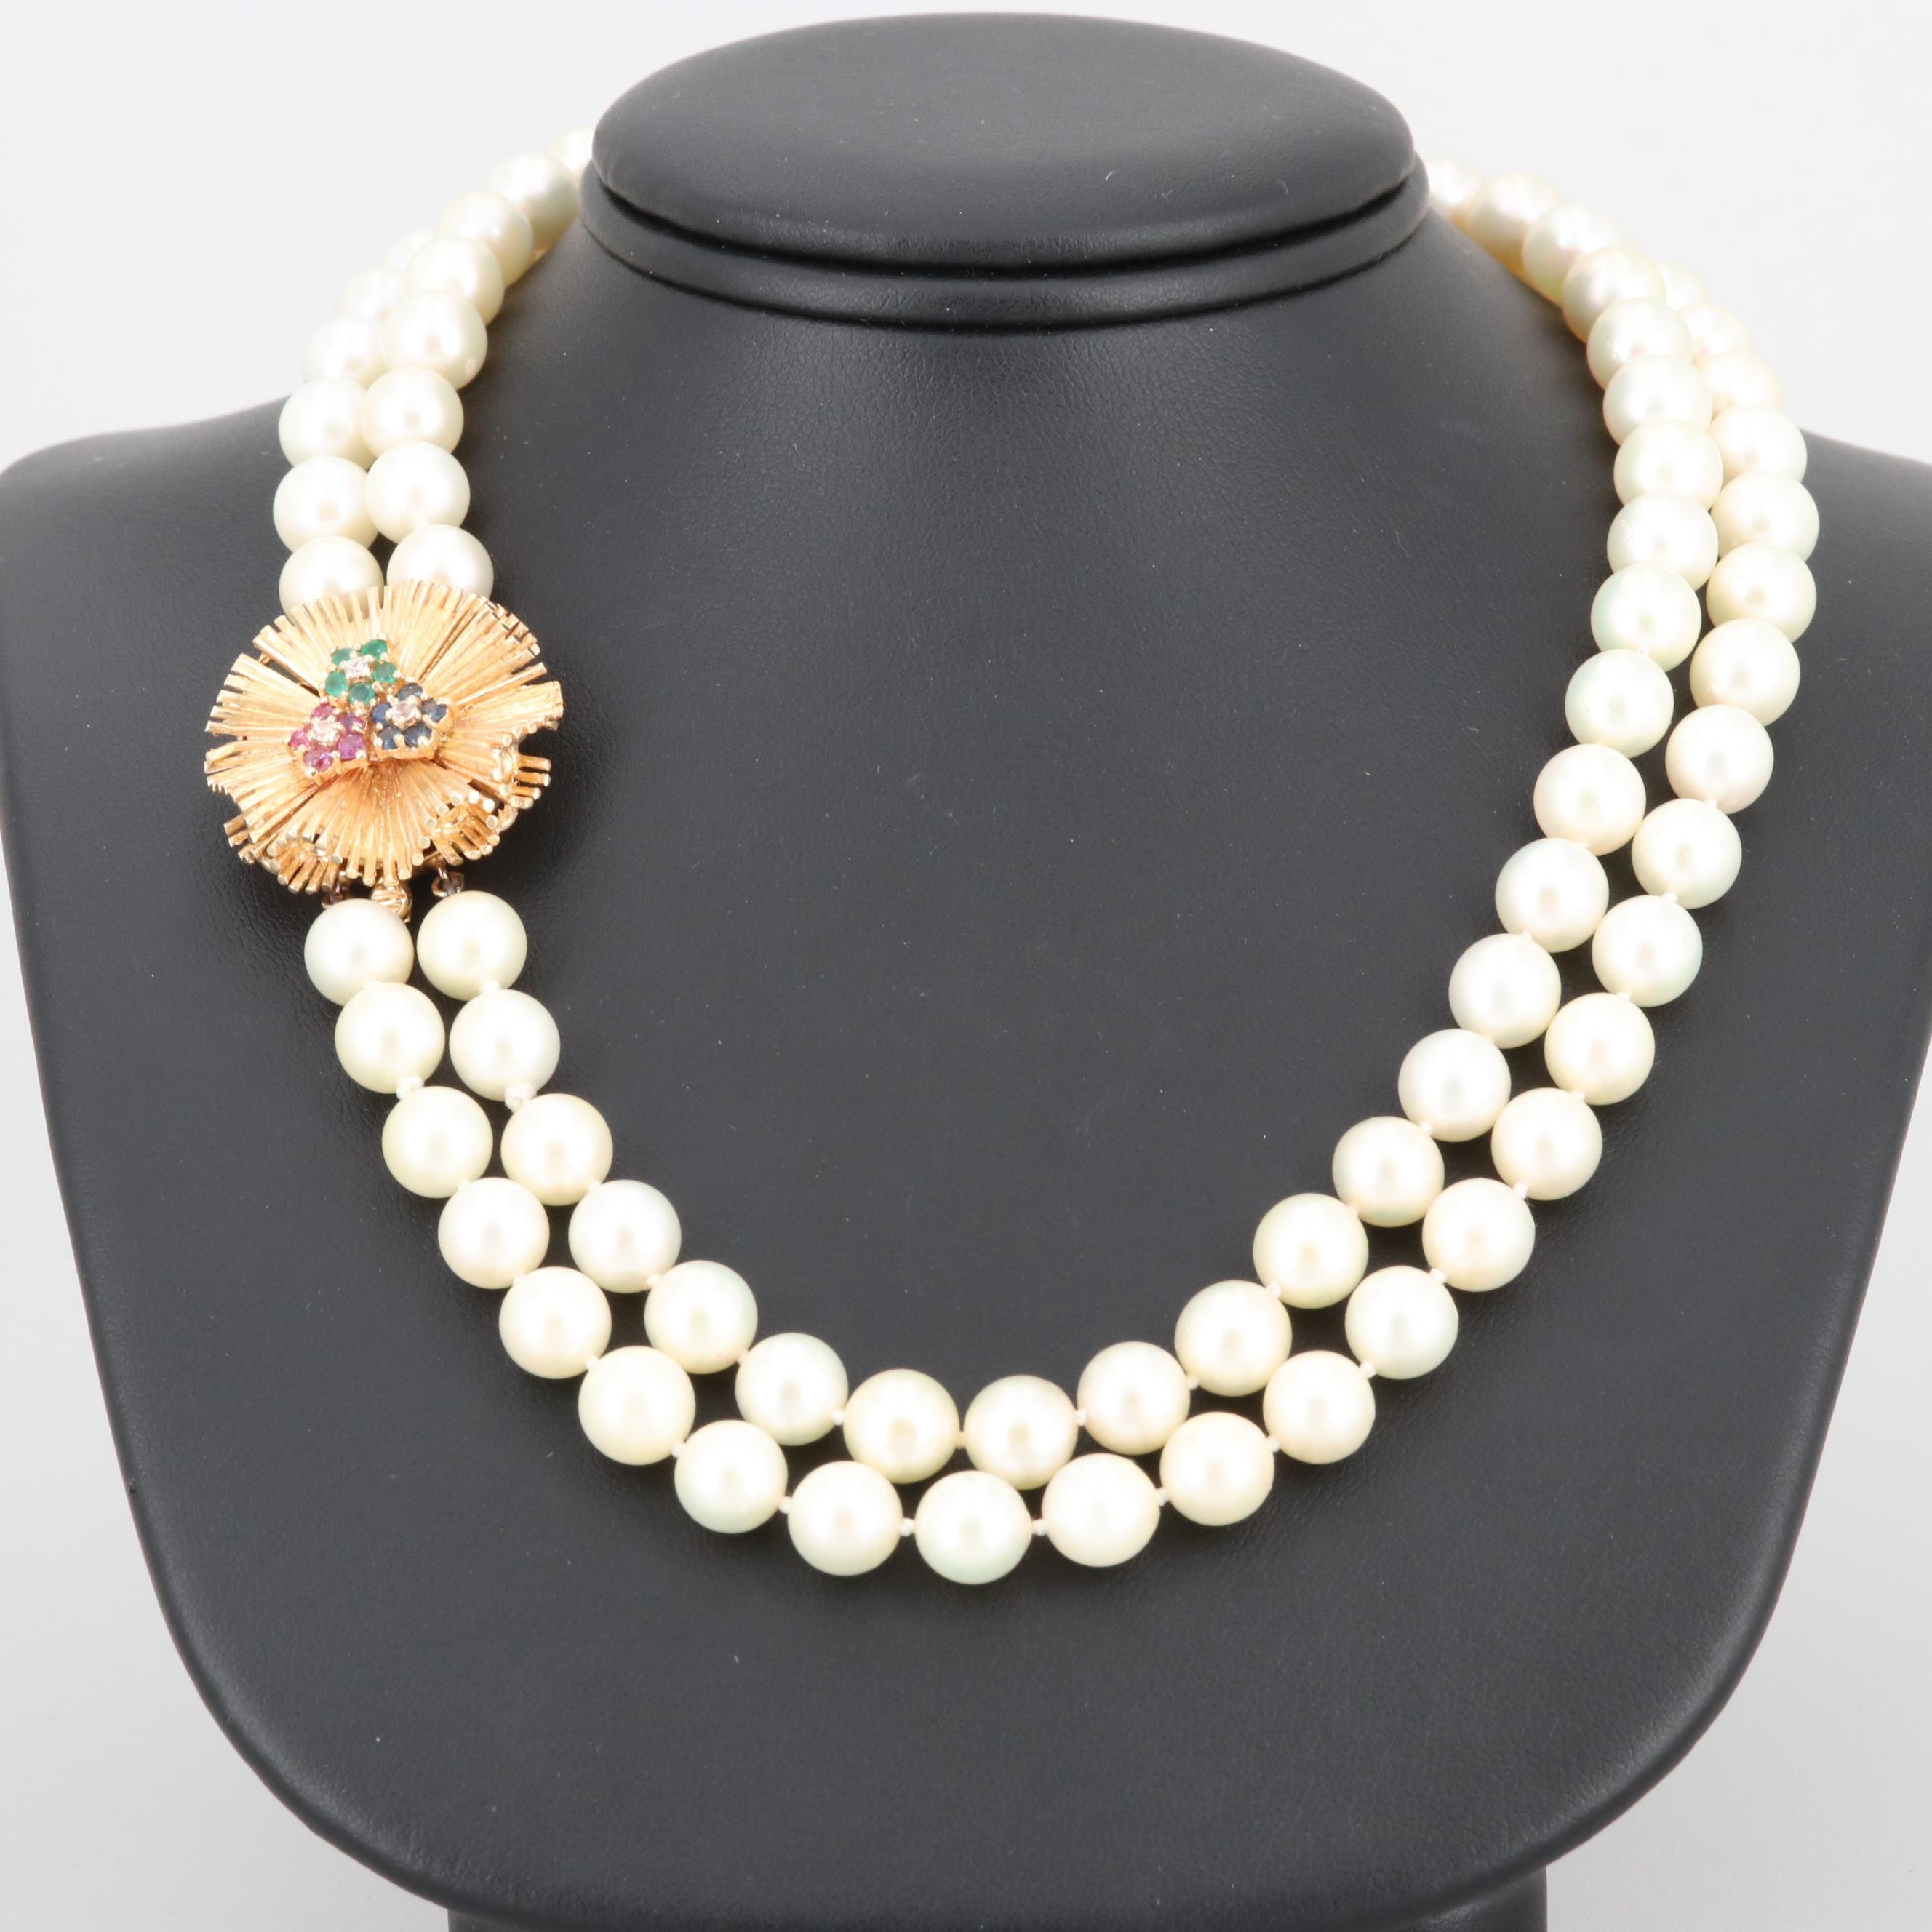 14K Yellow Gold Cultured Pearl Necklace with Gemstone Clasp